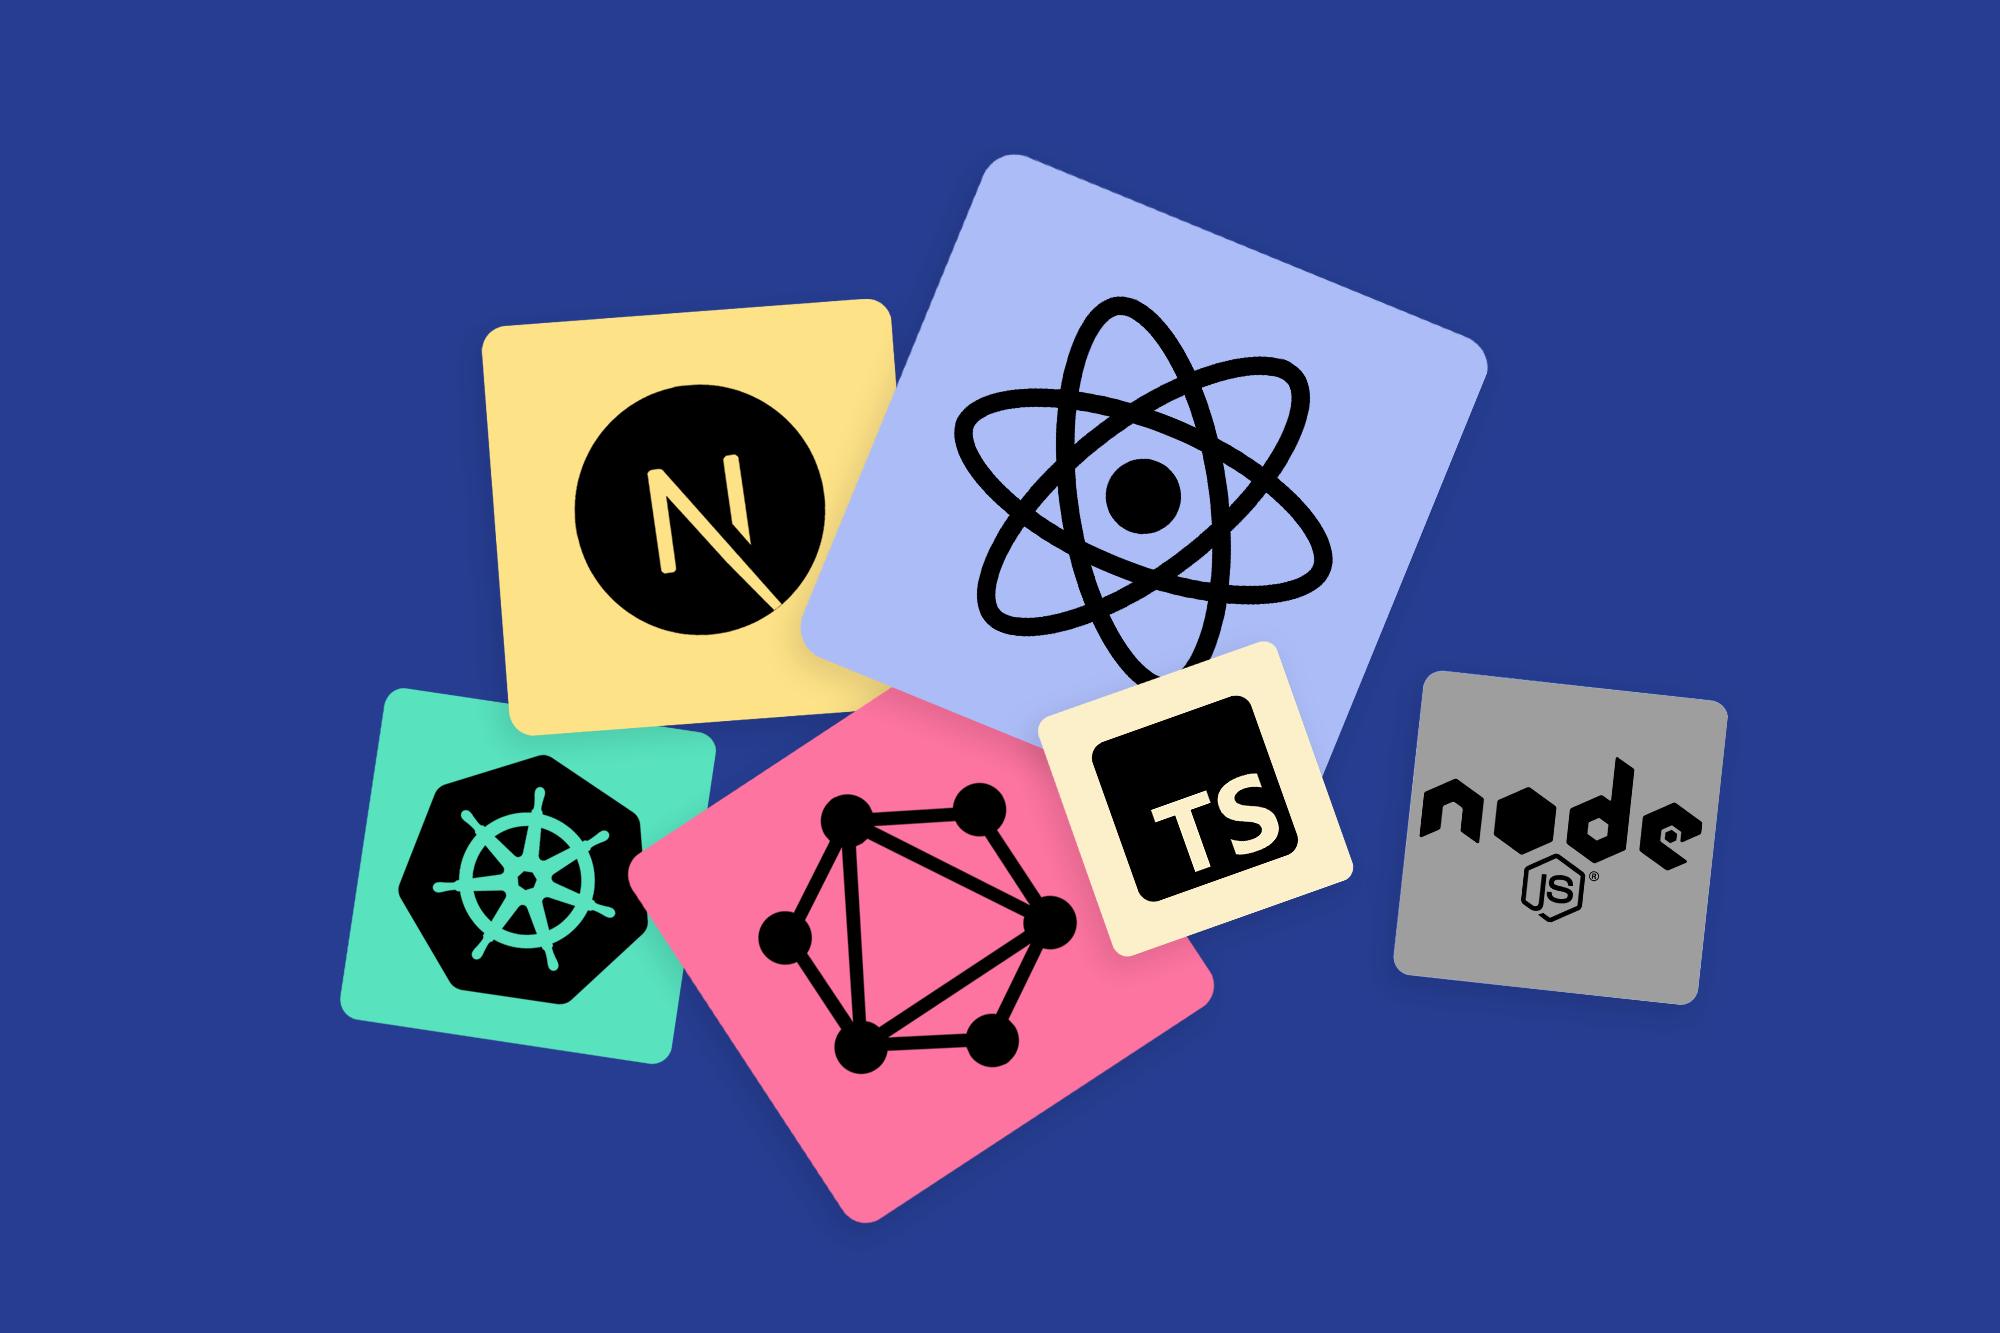 Next.js, GraphQL, Recoil, MUI and More: A New Web Stack Reviewed